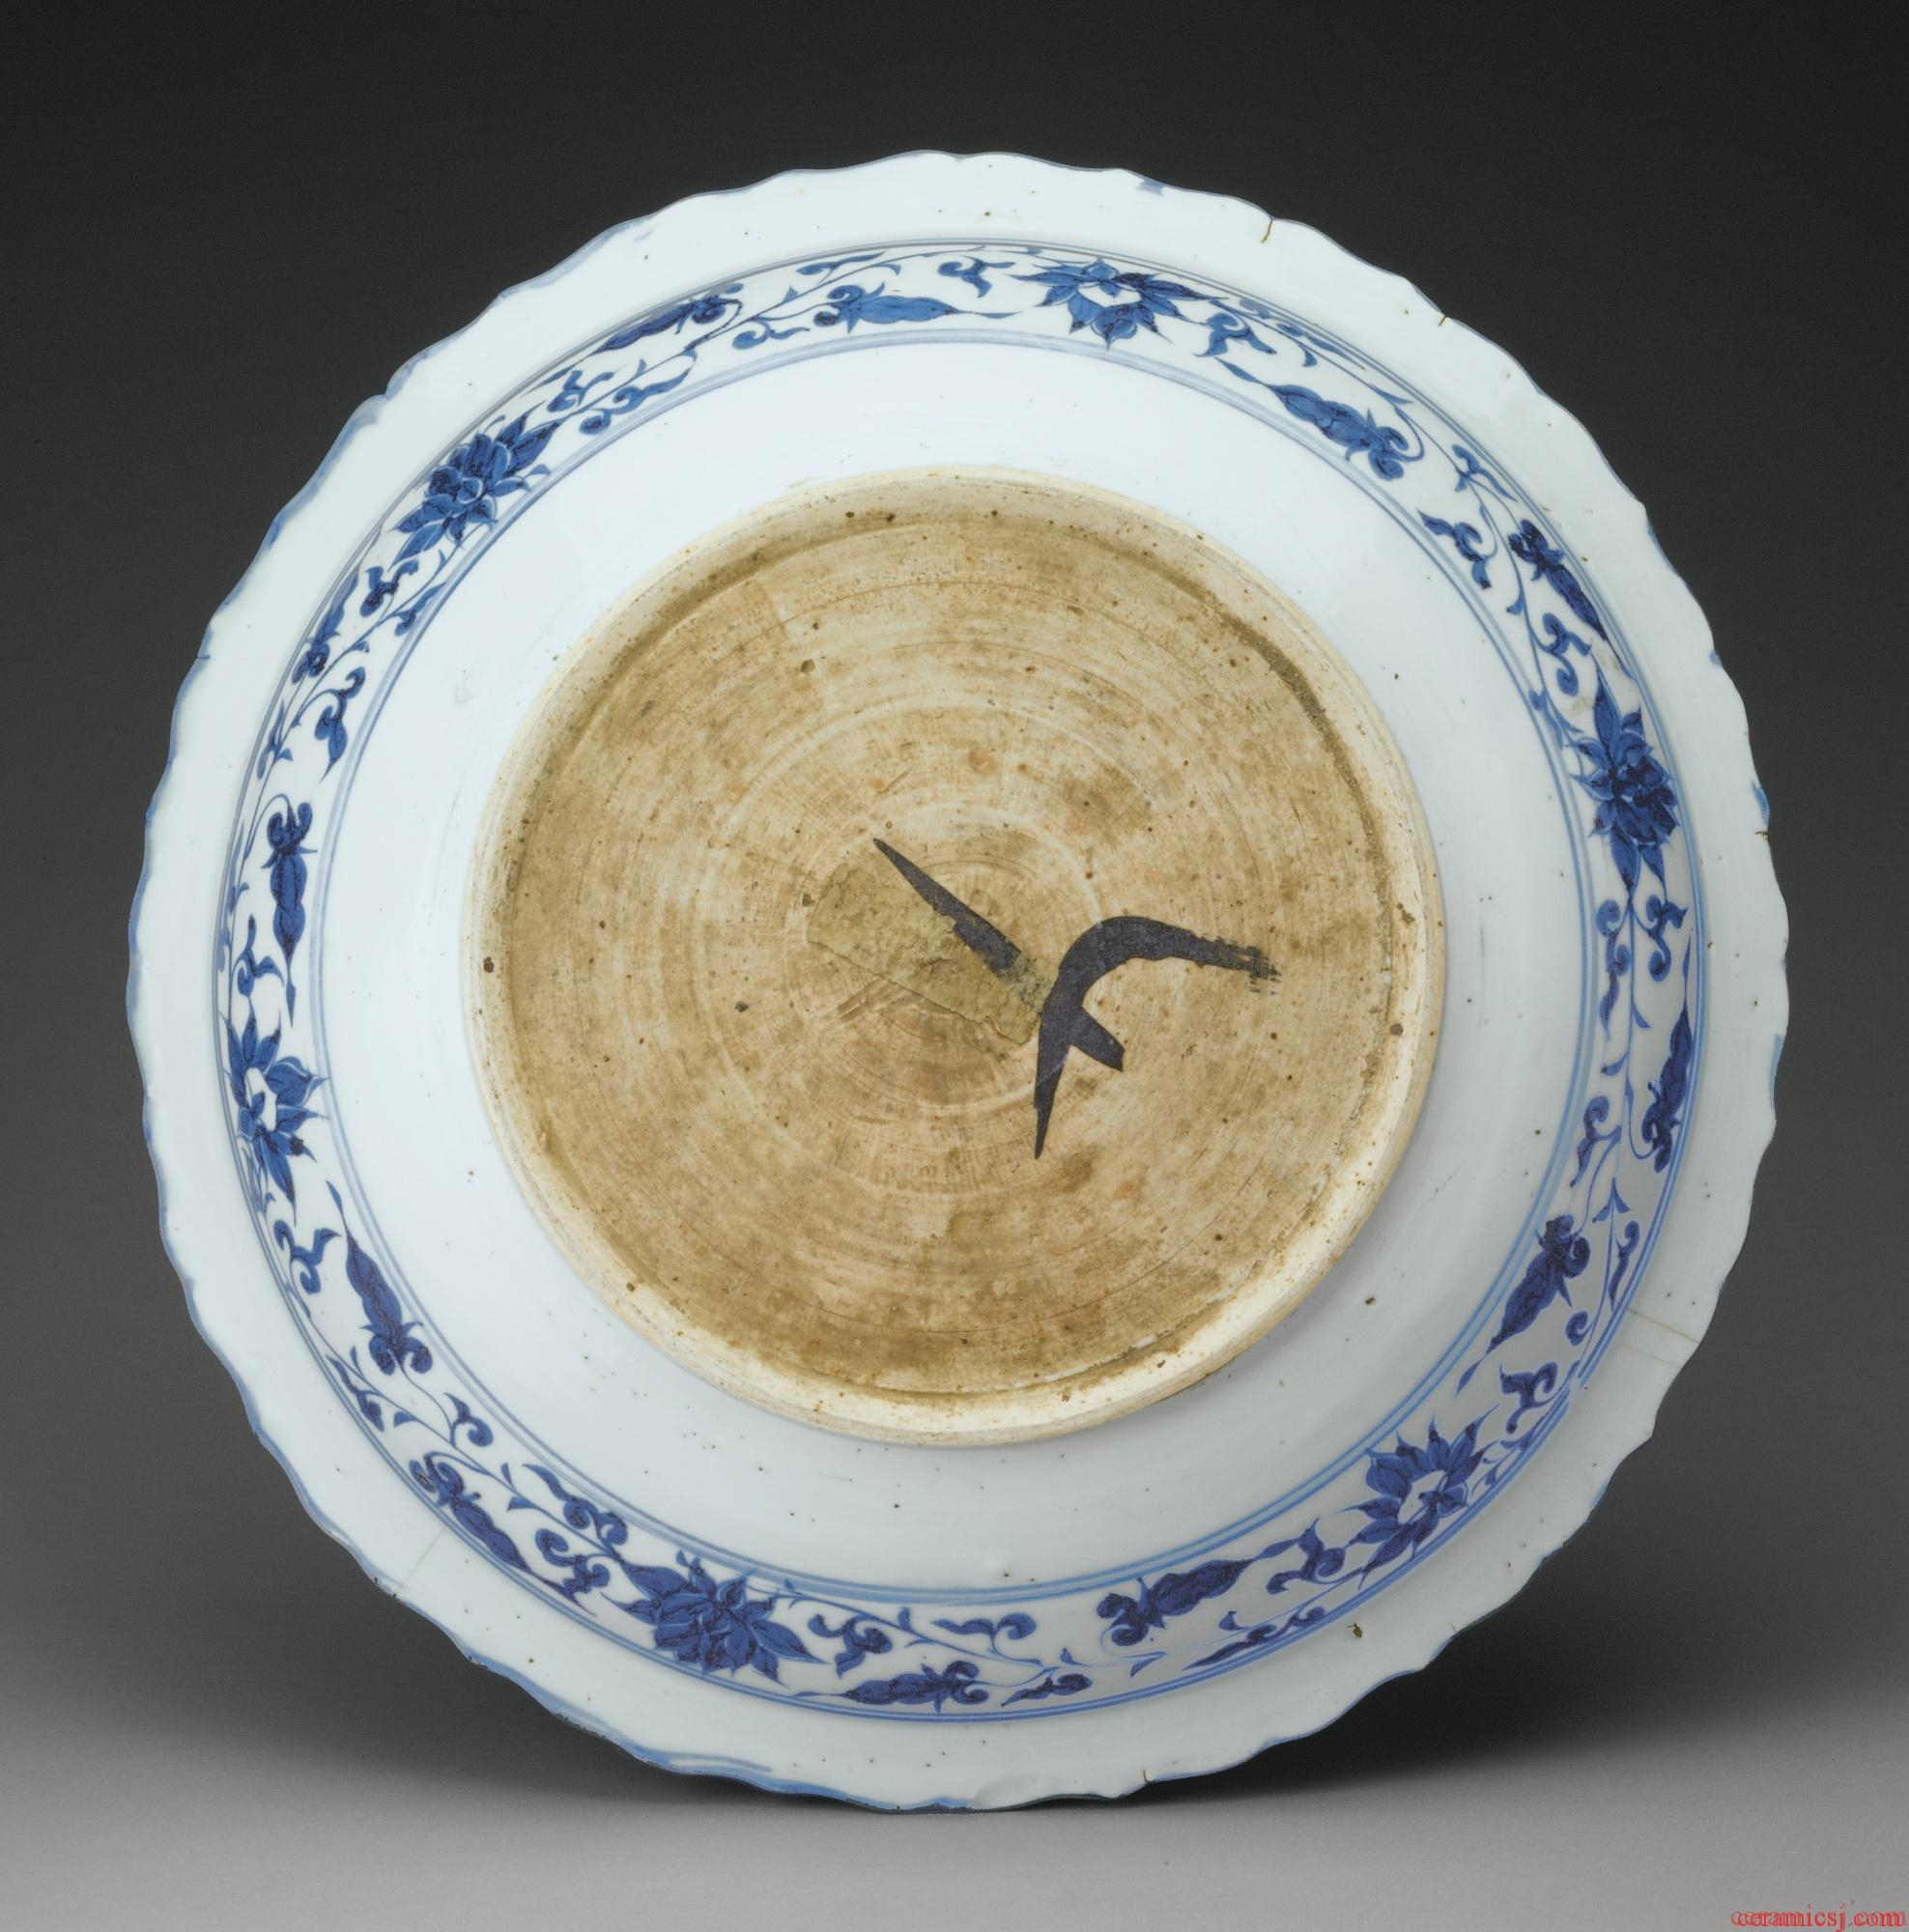 Sothebys:PROPERTY FROM A PRIVATE COLLECTION A RARE MOLDED BLUE AND WHITE BARBED RIM DISH YUAN DYNASTY, 14TH CENTURY Estimate   200,000 — 300,000  USD  LOT SOLD.4,197,000 USD